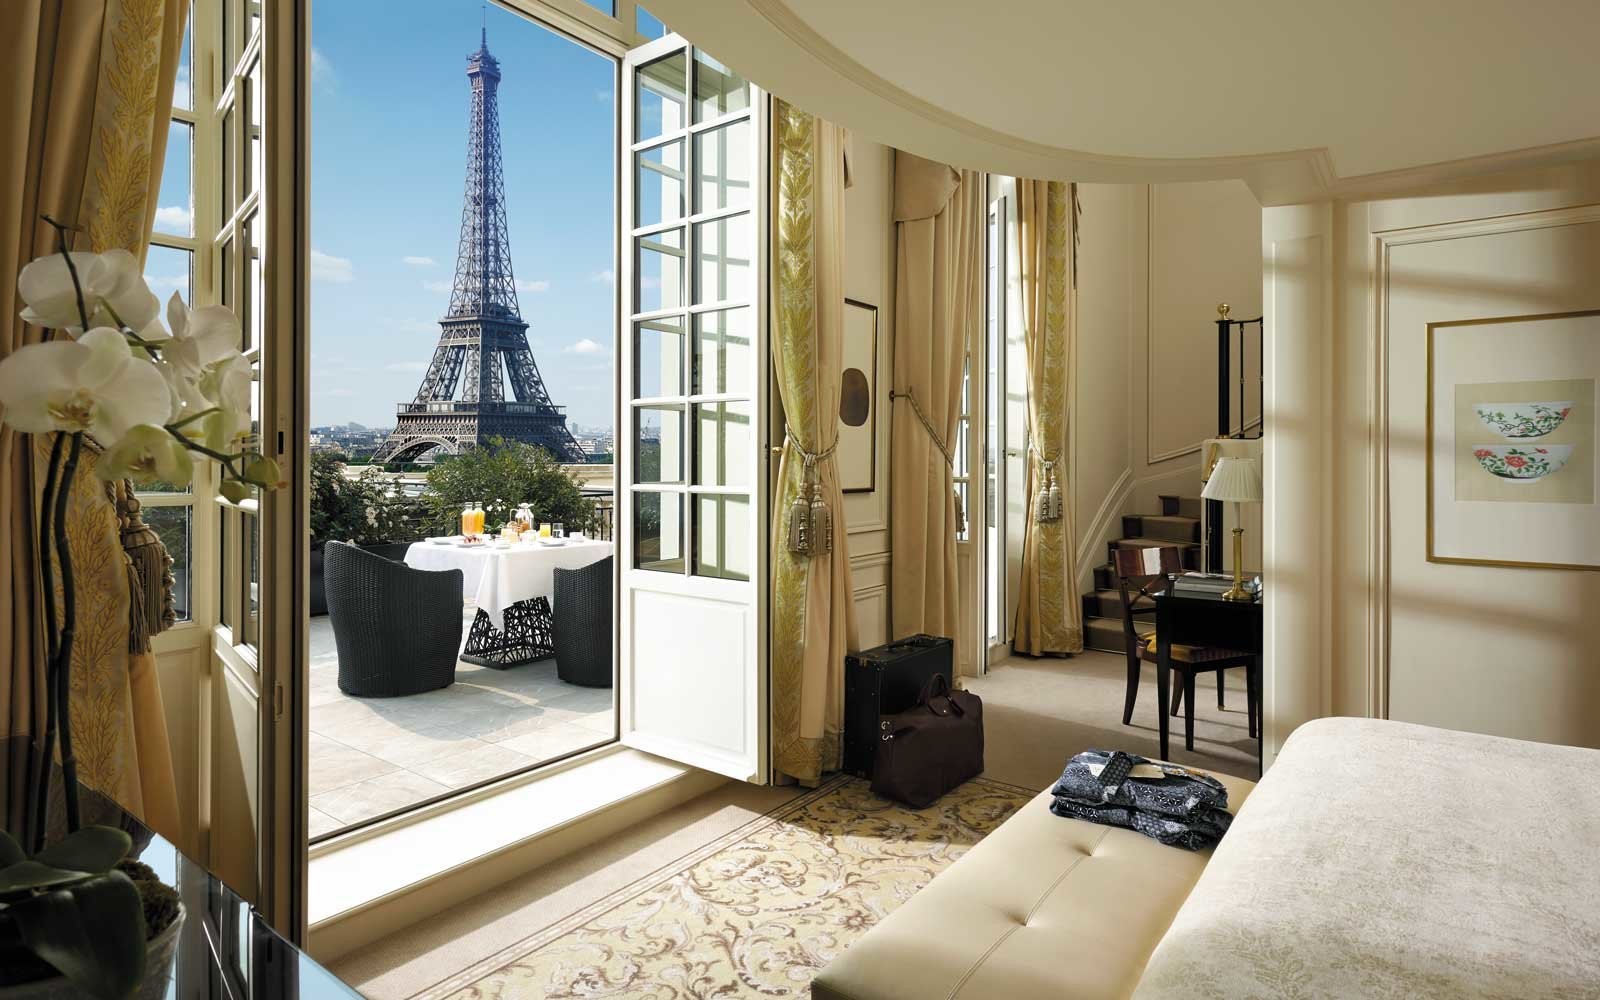 Top Romantic Hotels: Shangri-La, Paris, France